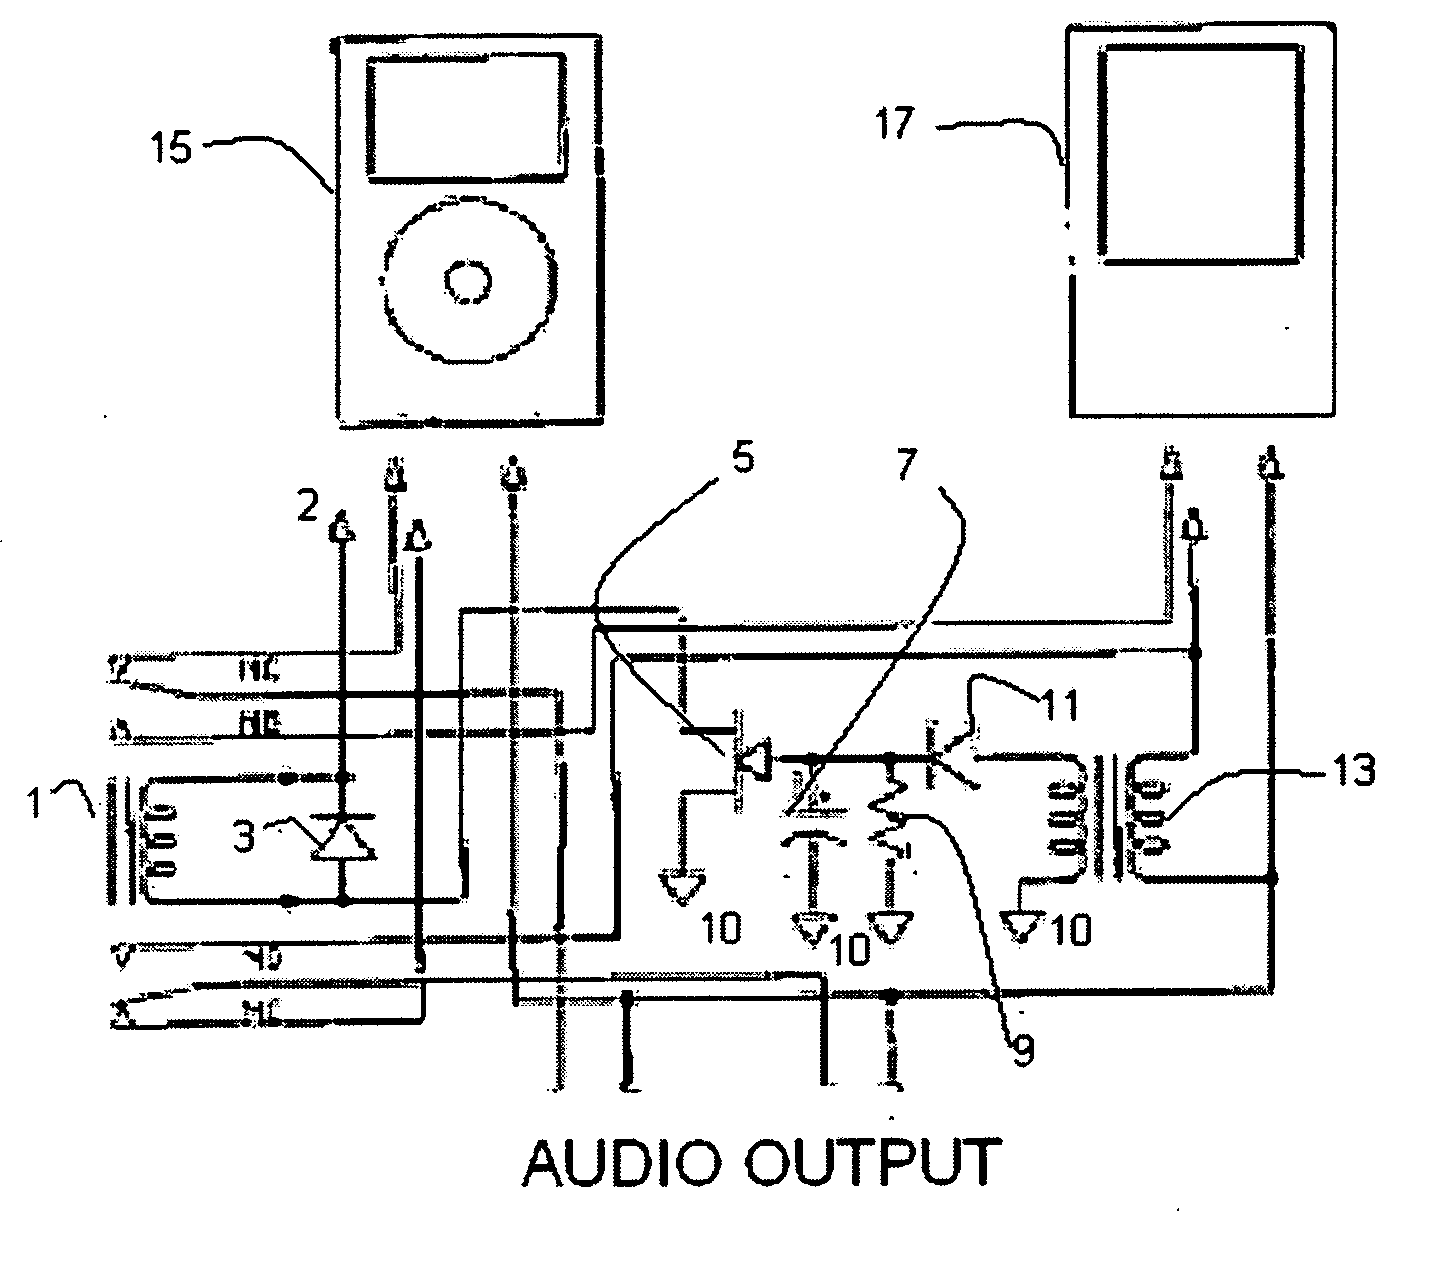 Patent Us20070071251 Audio Switch Google Patents Amplifier Projects To Control The Speaker Output Relay Drawing